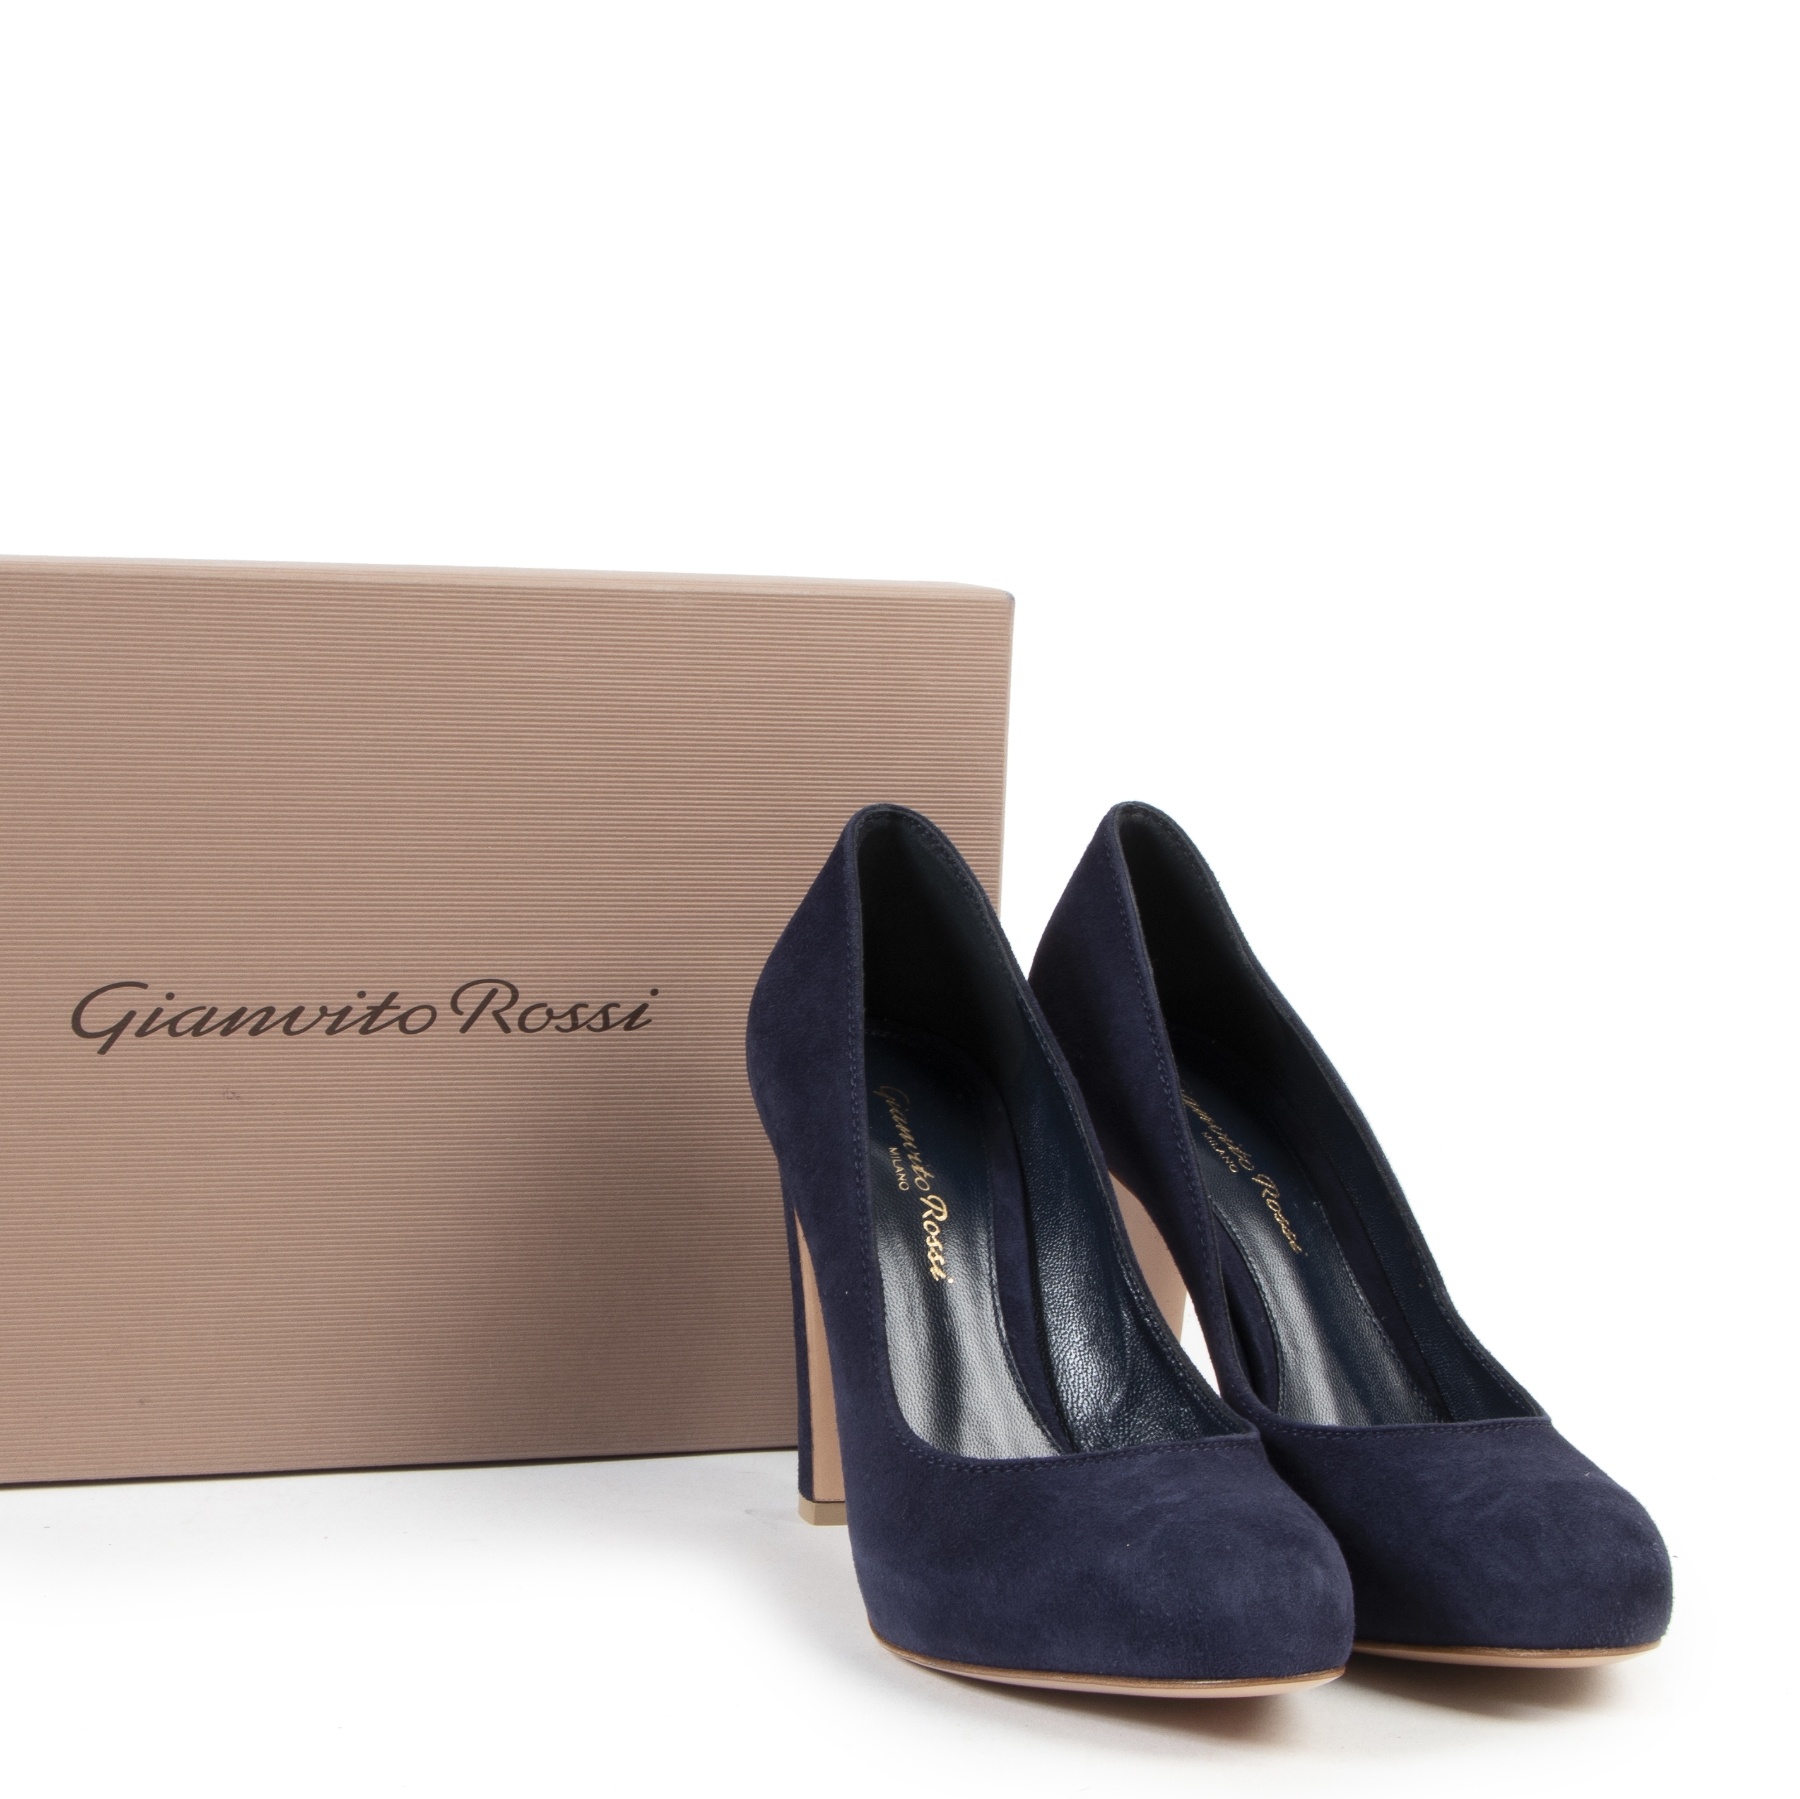 We buy and sell your Gianvito Rossi Navy Blue Heels - Size 36.5